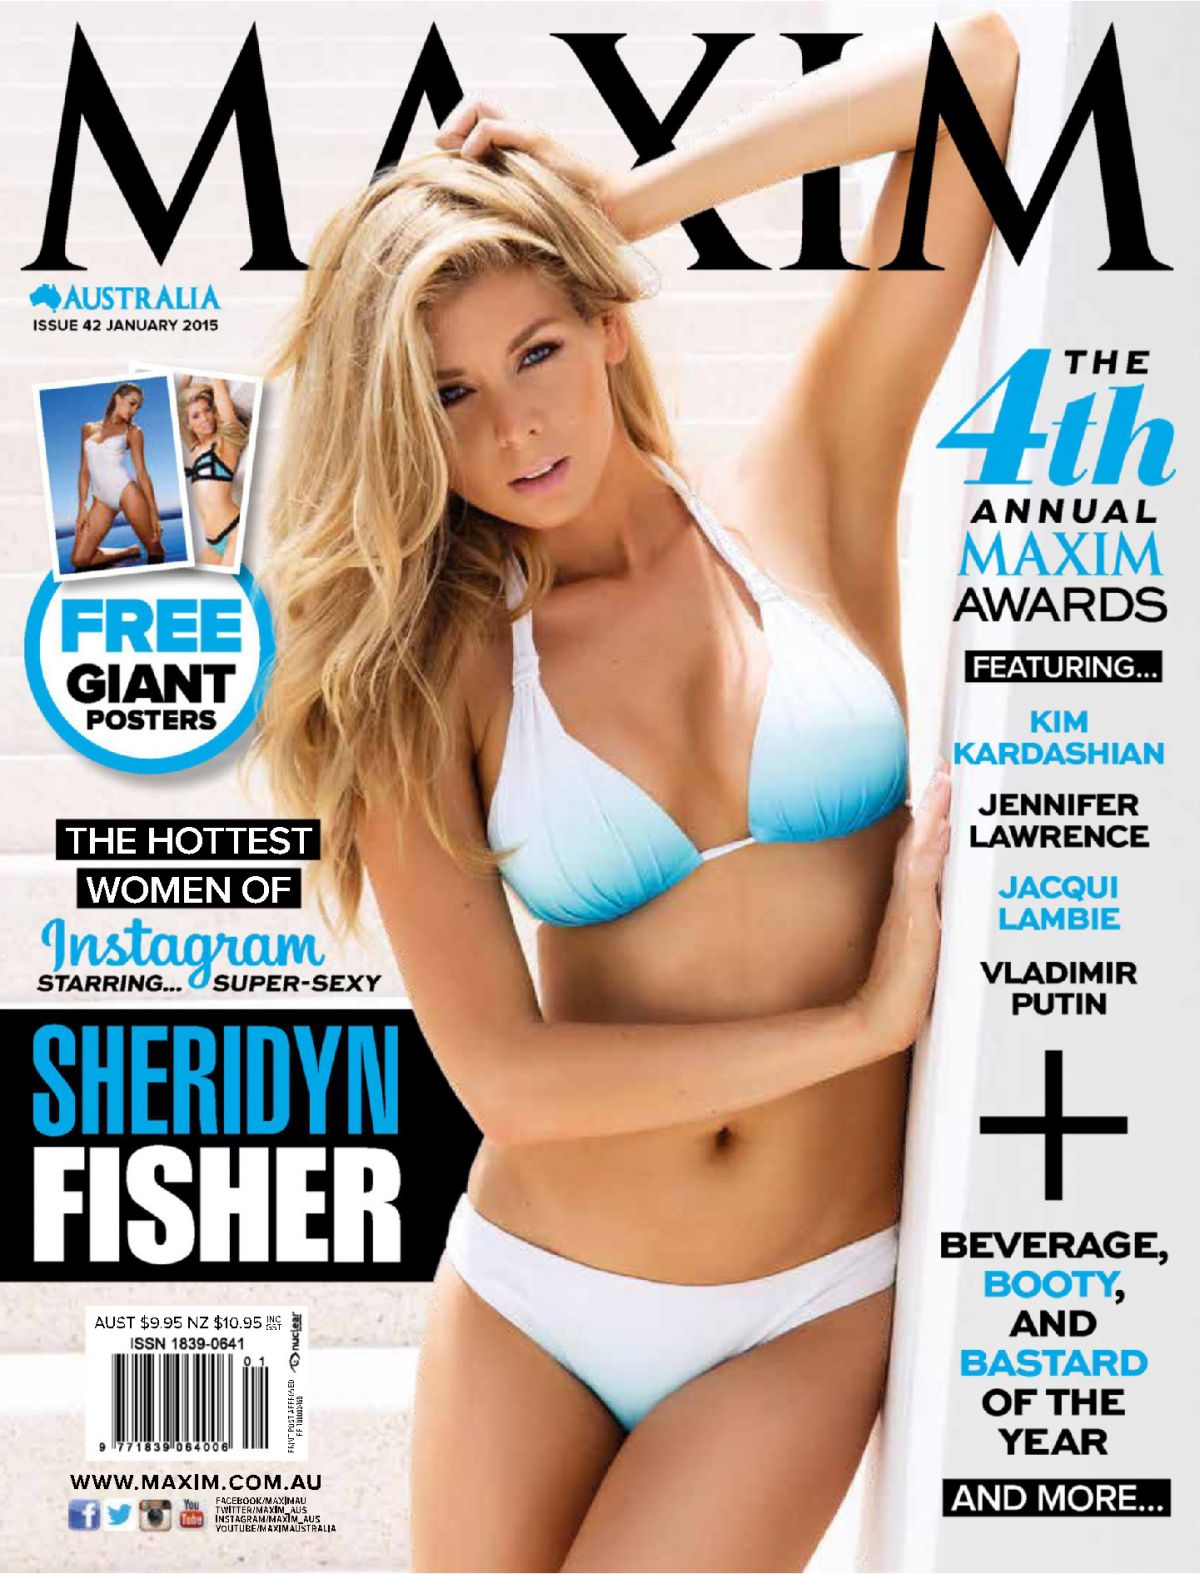 sheridyn-fisher-in-maxim-magazine-australia-january-2015-issue_1